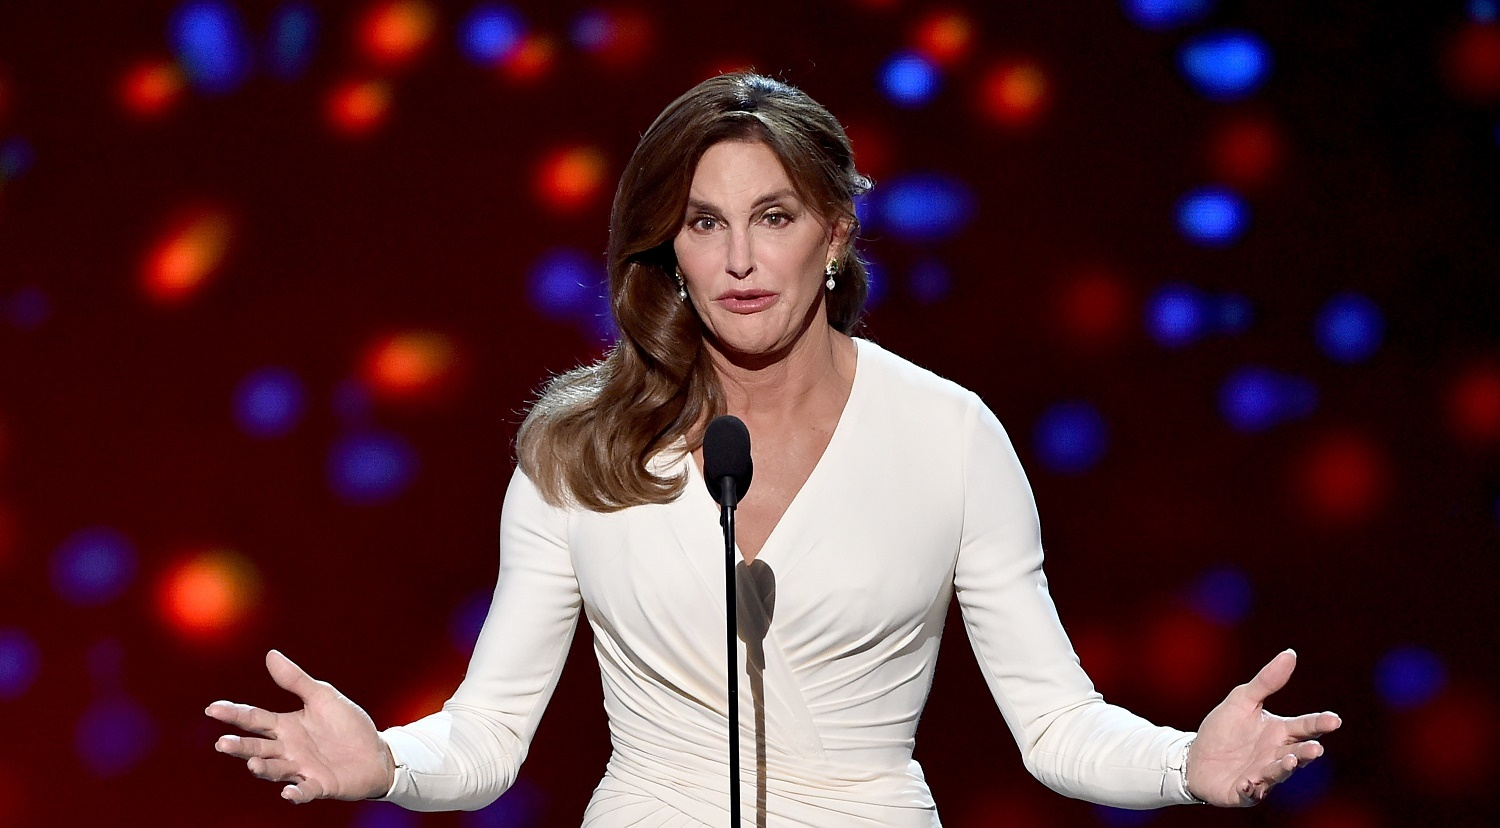 Caitlyn Jenner to deliver Channel 4 diversity lecture